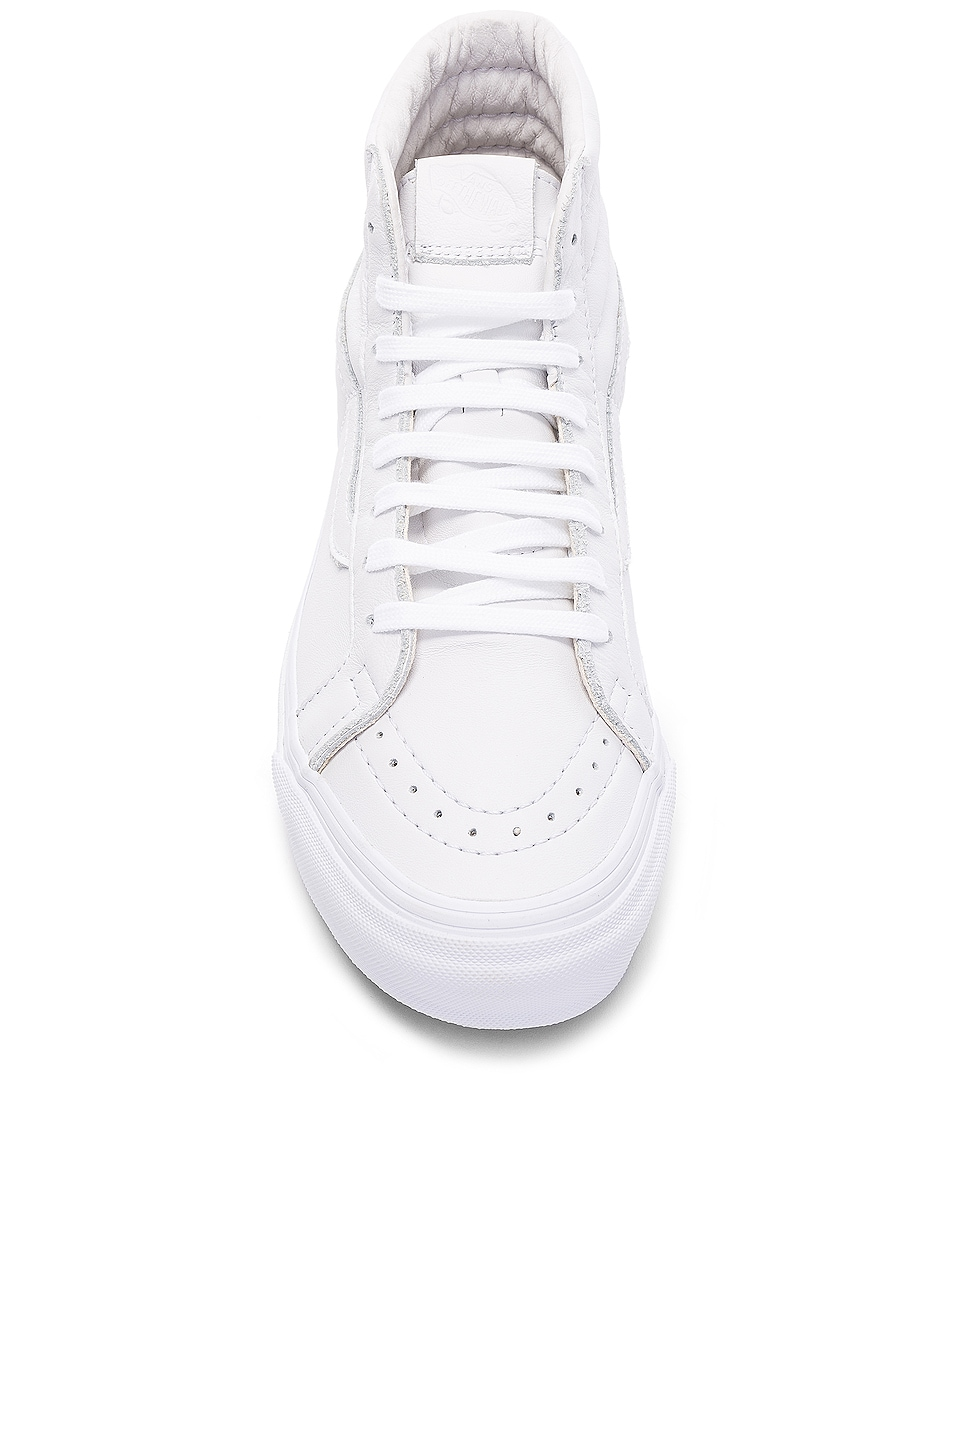 Image 4 of Vans Vault Leather OG SK8-HI LX in White